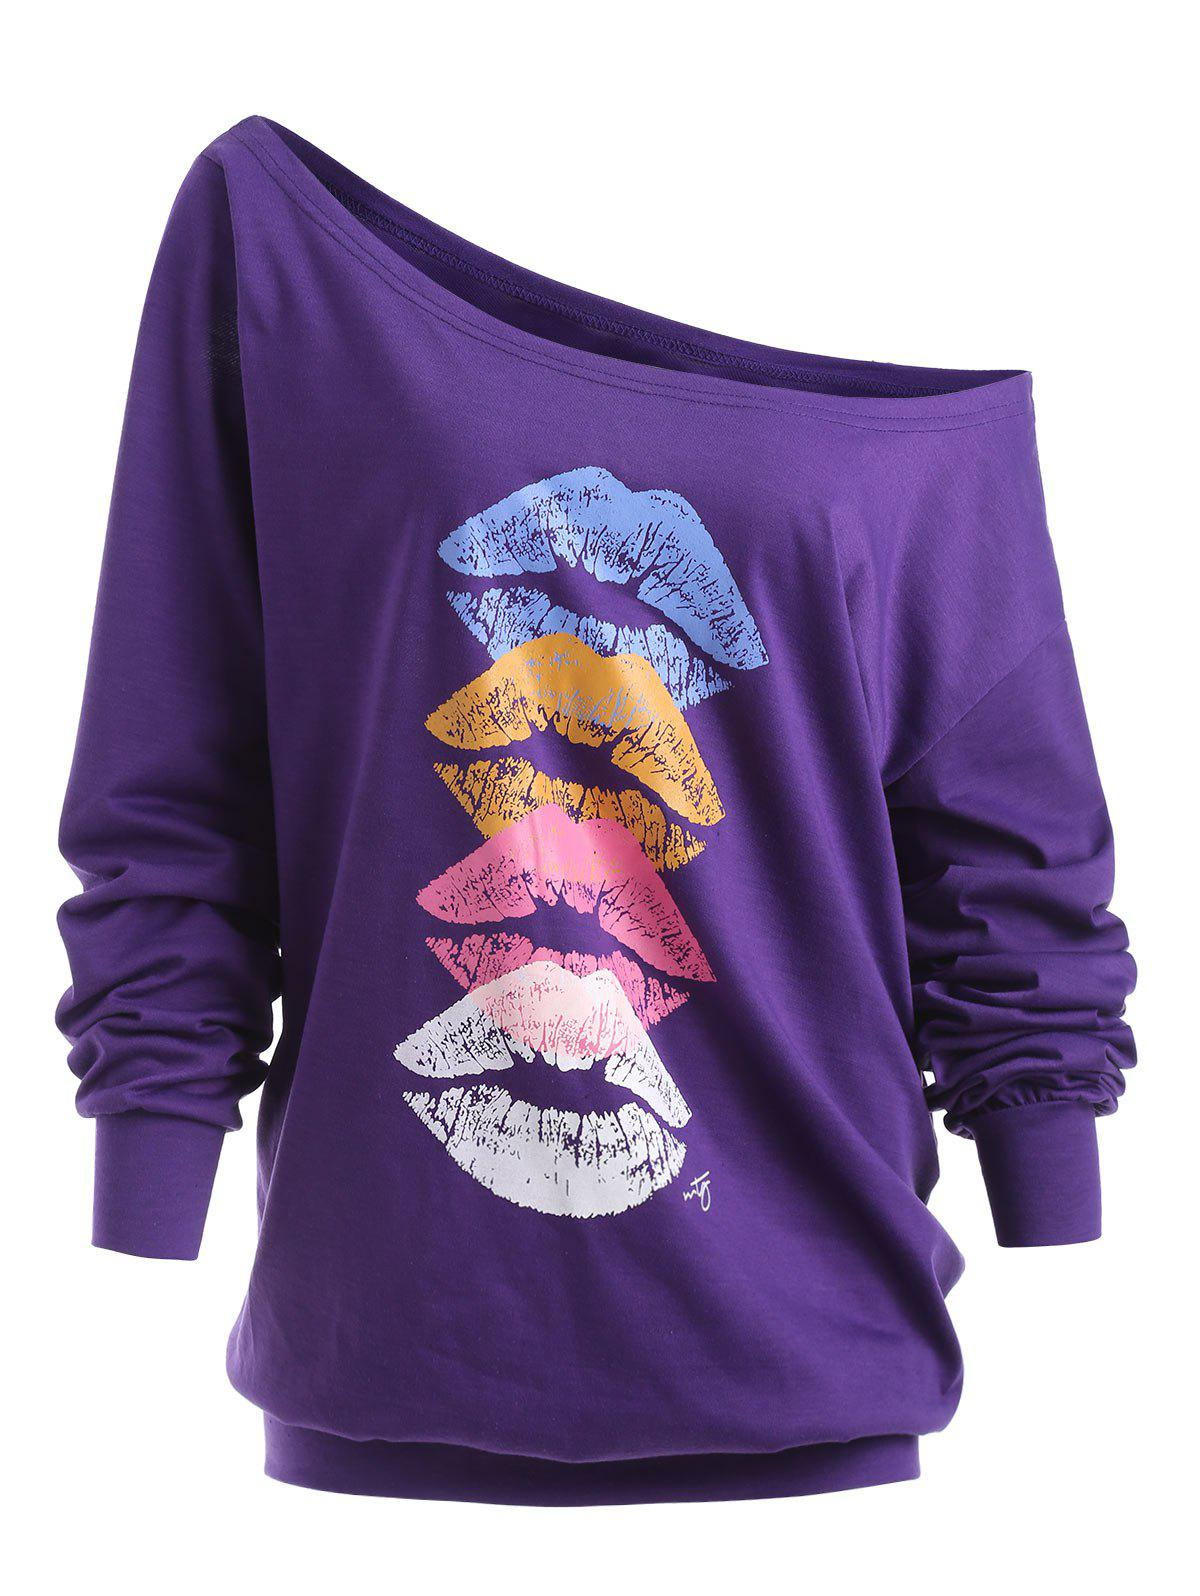 Lips Graphic Plus Size Skew Neck SweatshirtWOMEN<br><br>Size: 5XL; Color: PURPLE; Material: Cotton Blend,Polyester; Shirt Length: Regular; Sleeve Length: Full; Style: Fashion; Pattern Style: Print; Season: Fall,Winter; Weight: 0.3700kg; Package Contents: 1 x Sweatshirt;